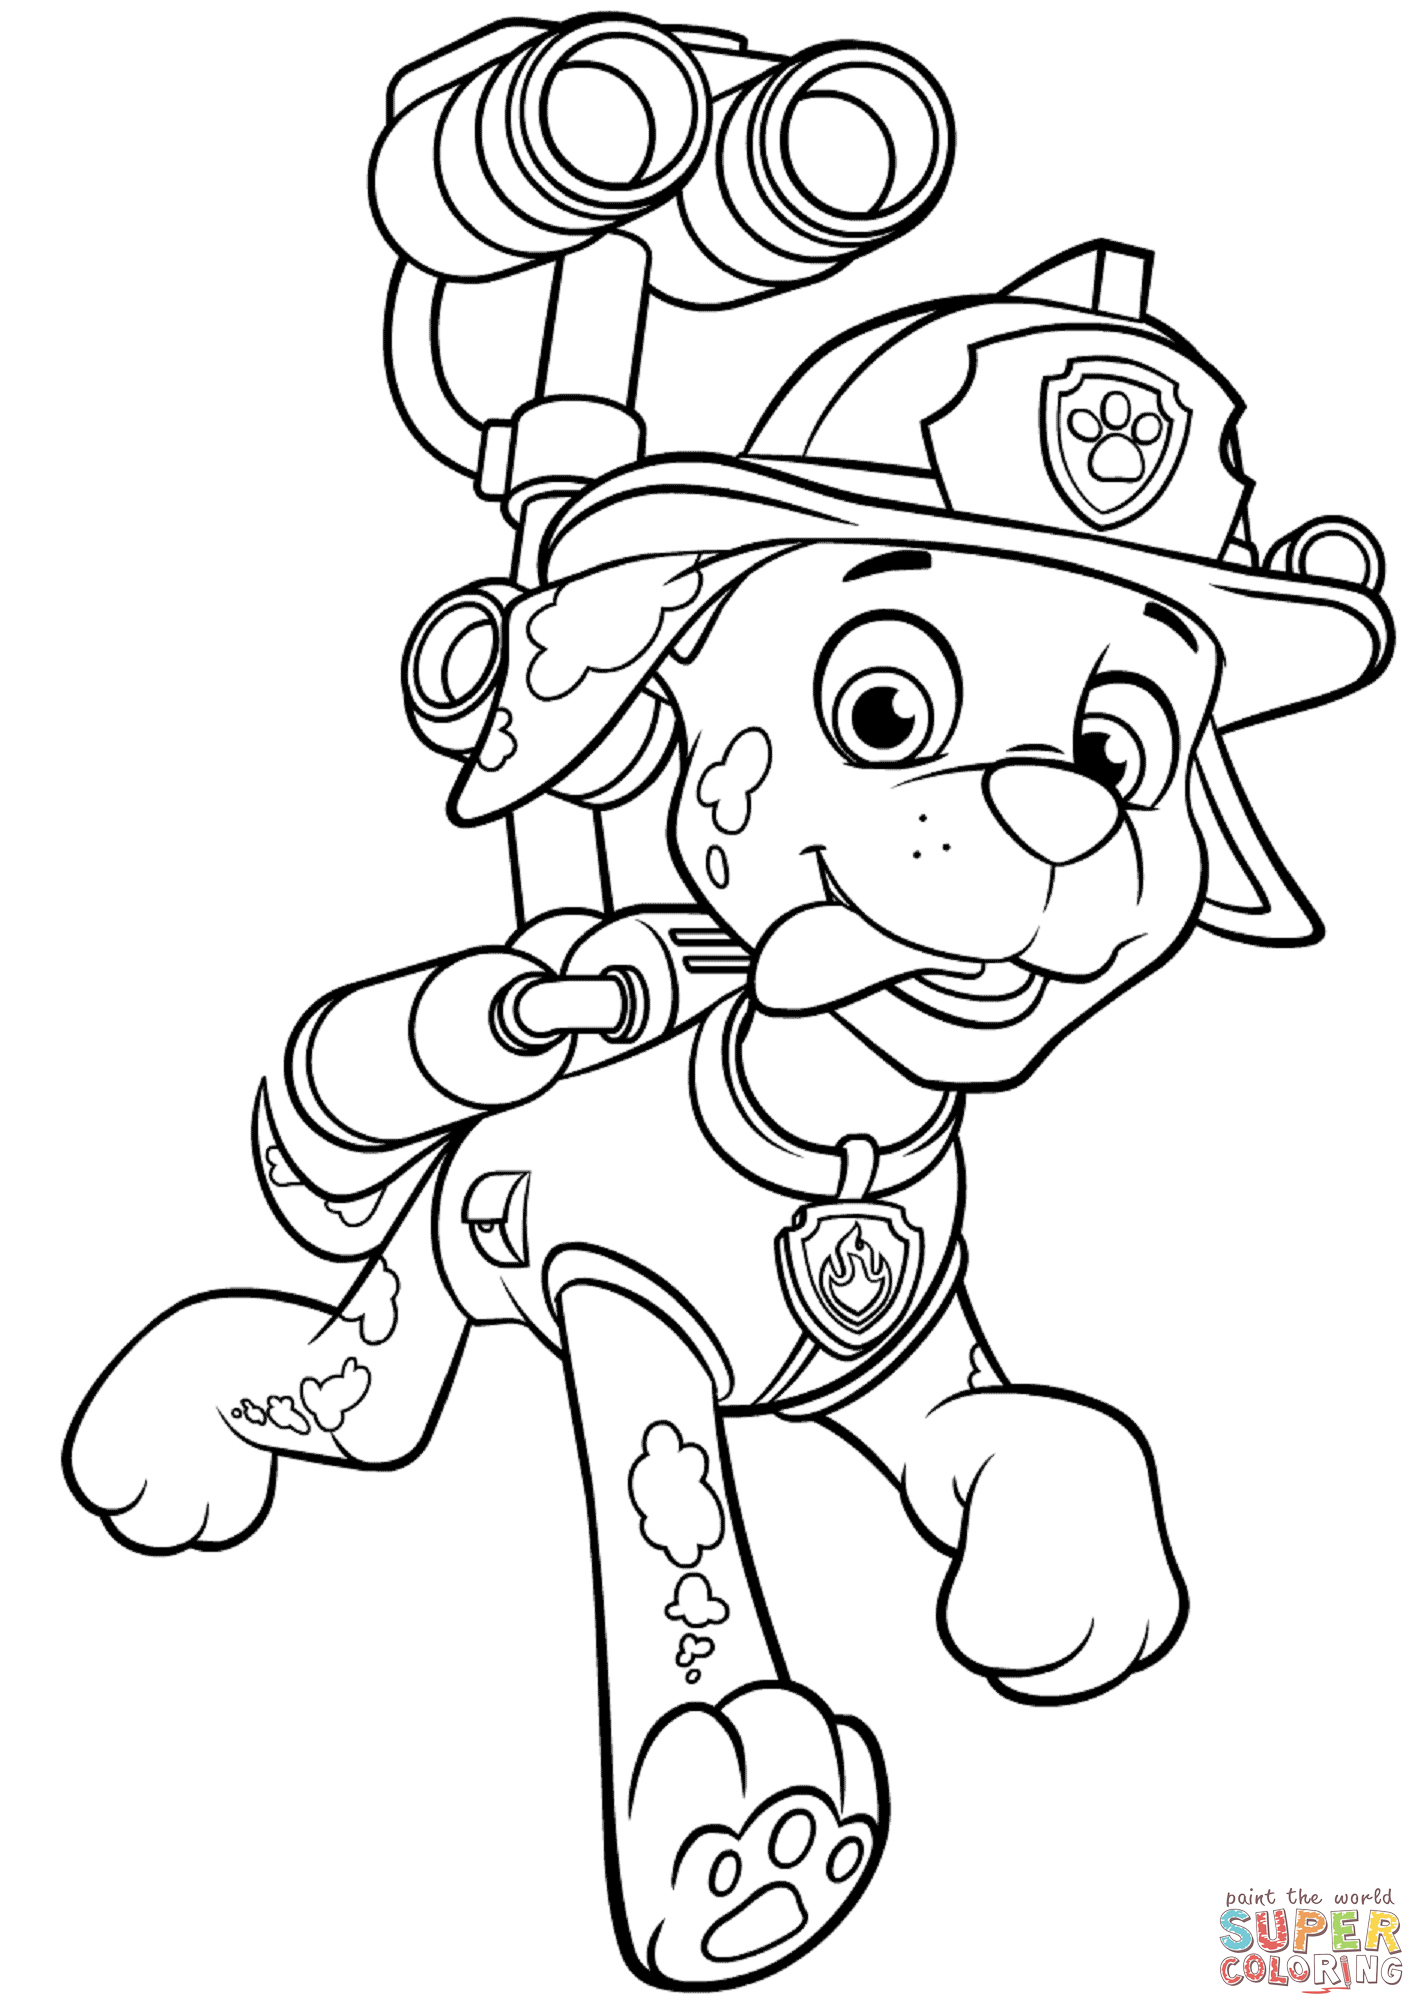 Ausmalbilder Marshall Paw Patrol : Beautiful Paw Patrol Coloring Pages Marshall Coloringfun